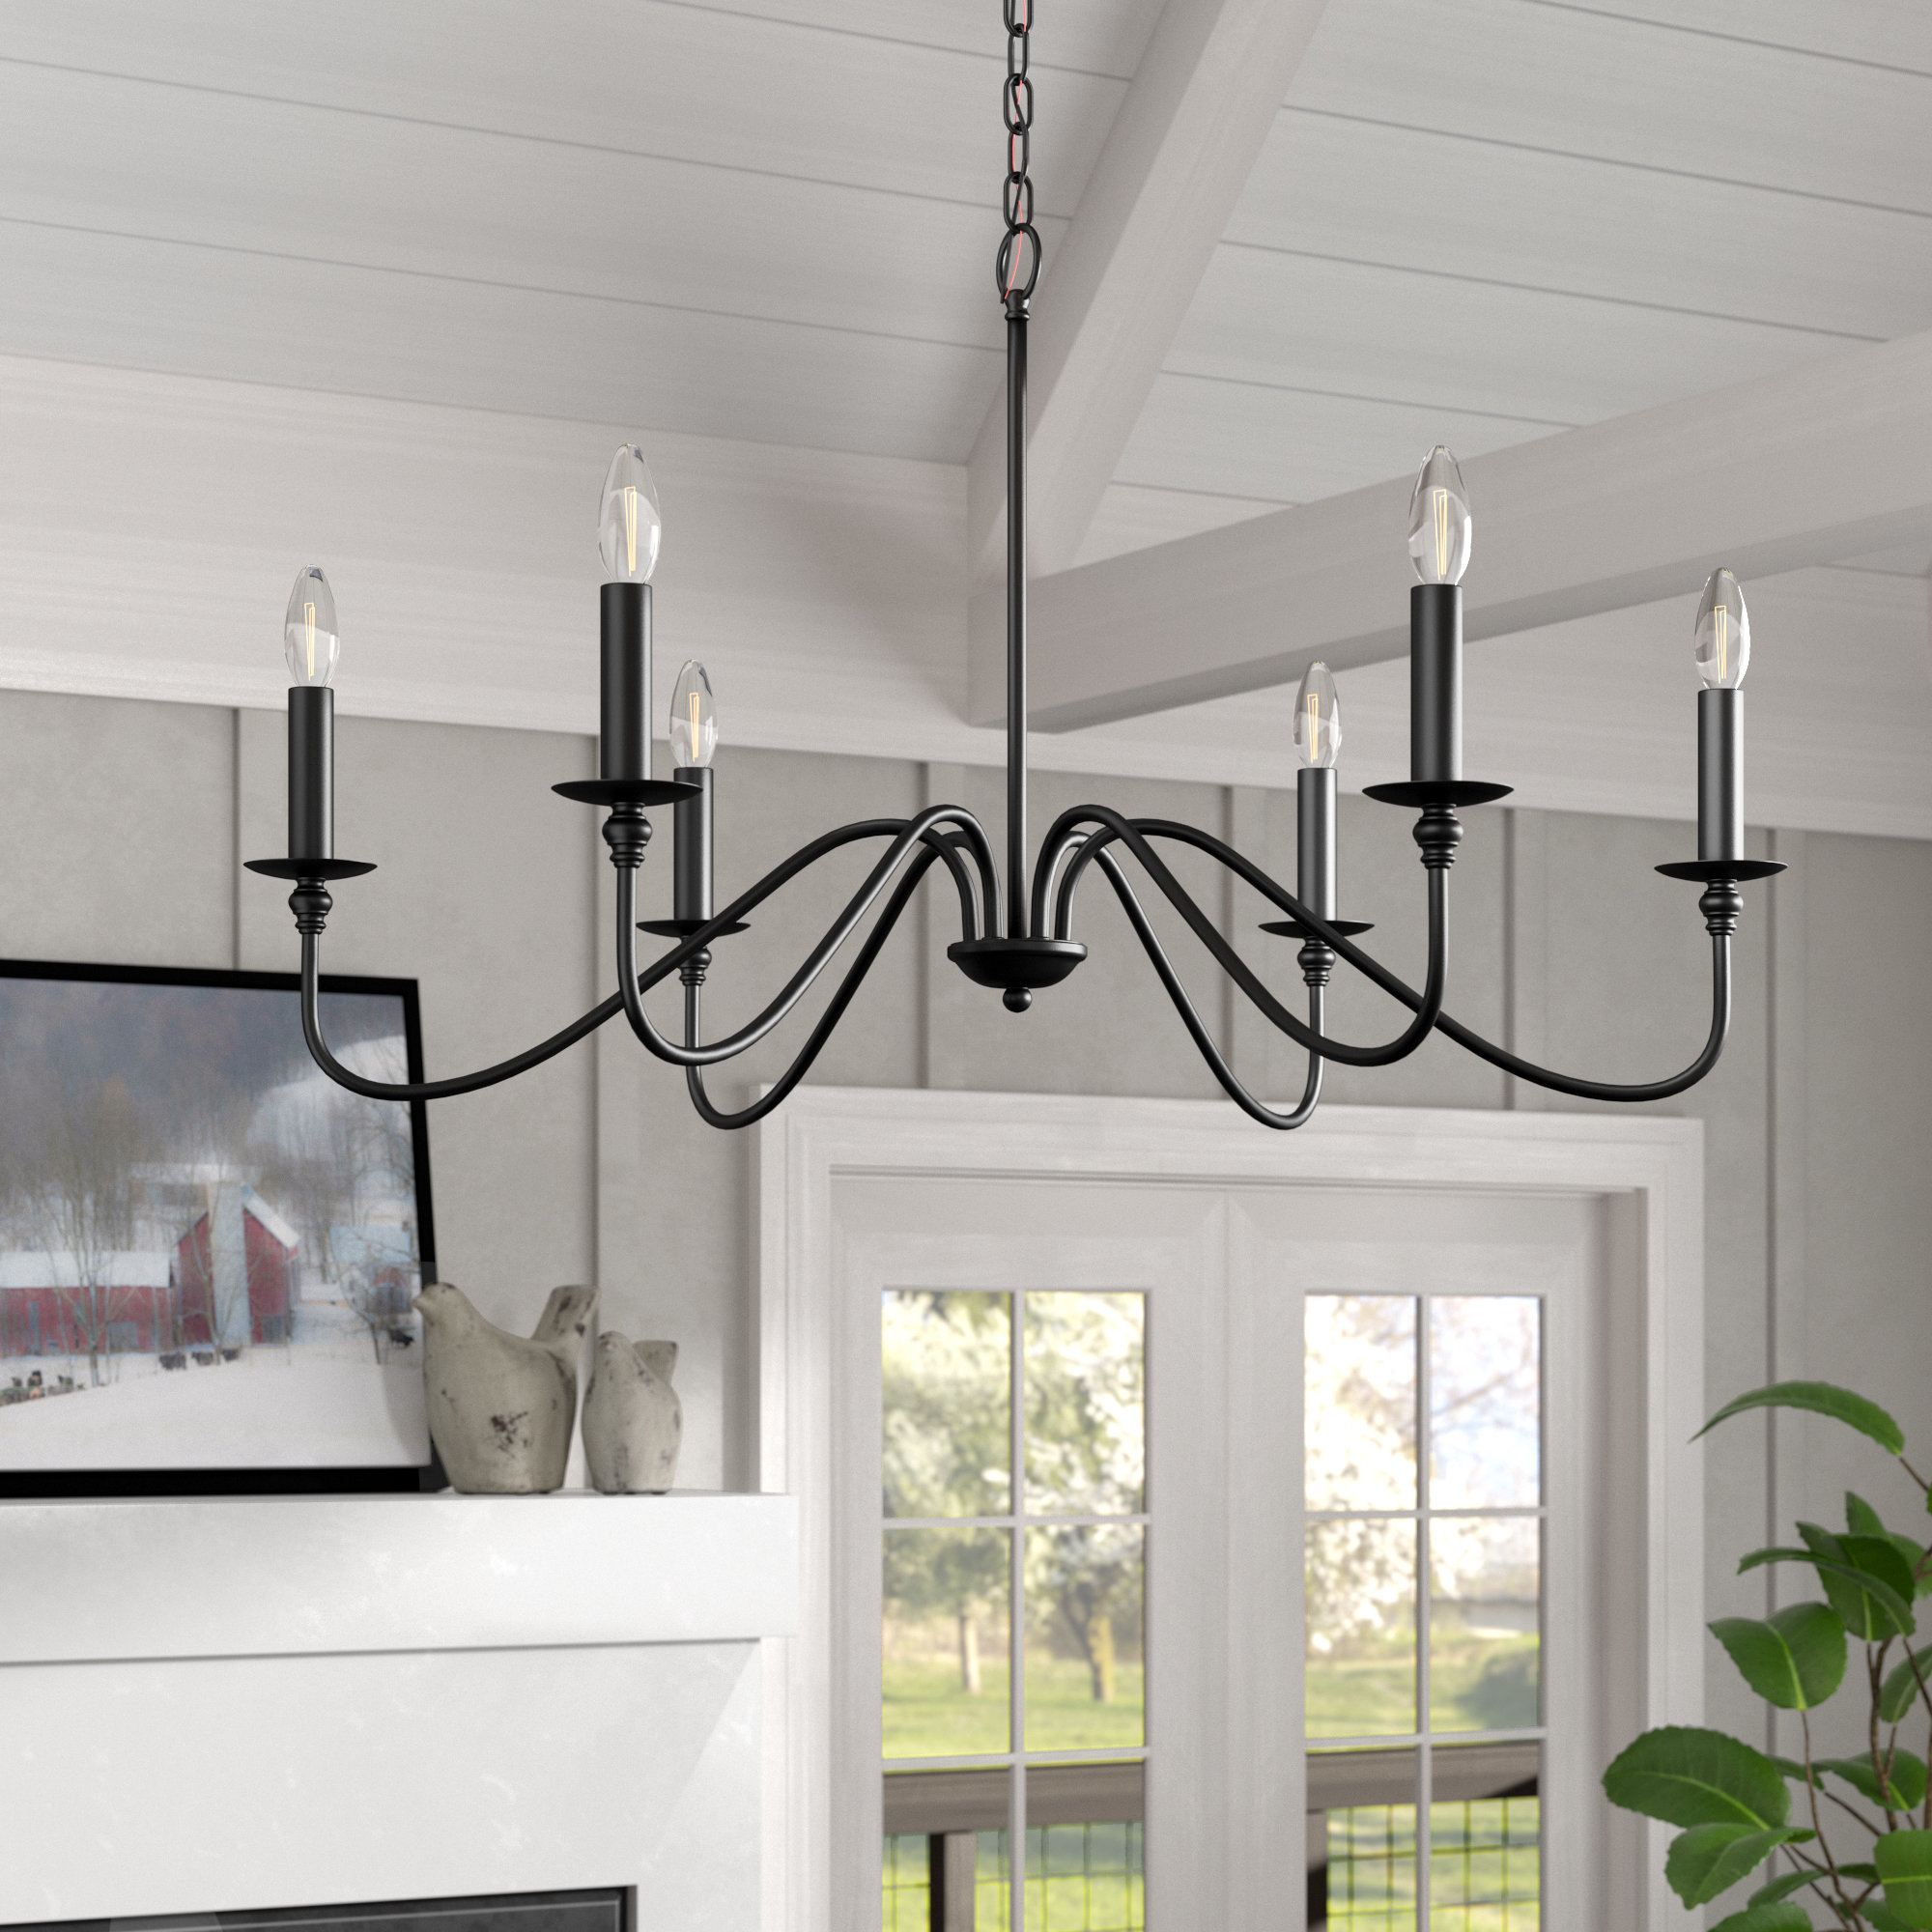 Most Recent Diaz 6 Light Candle Style Chandeliers Throughout Hamza 6 Light Candle Style Chandelier (View 20 of 25)